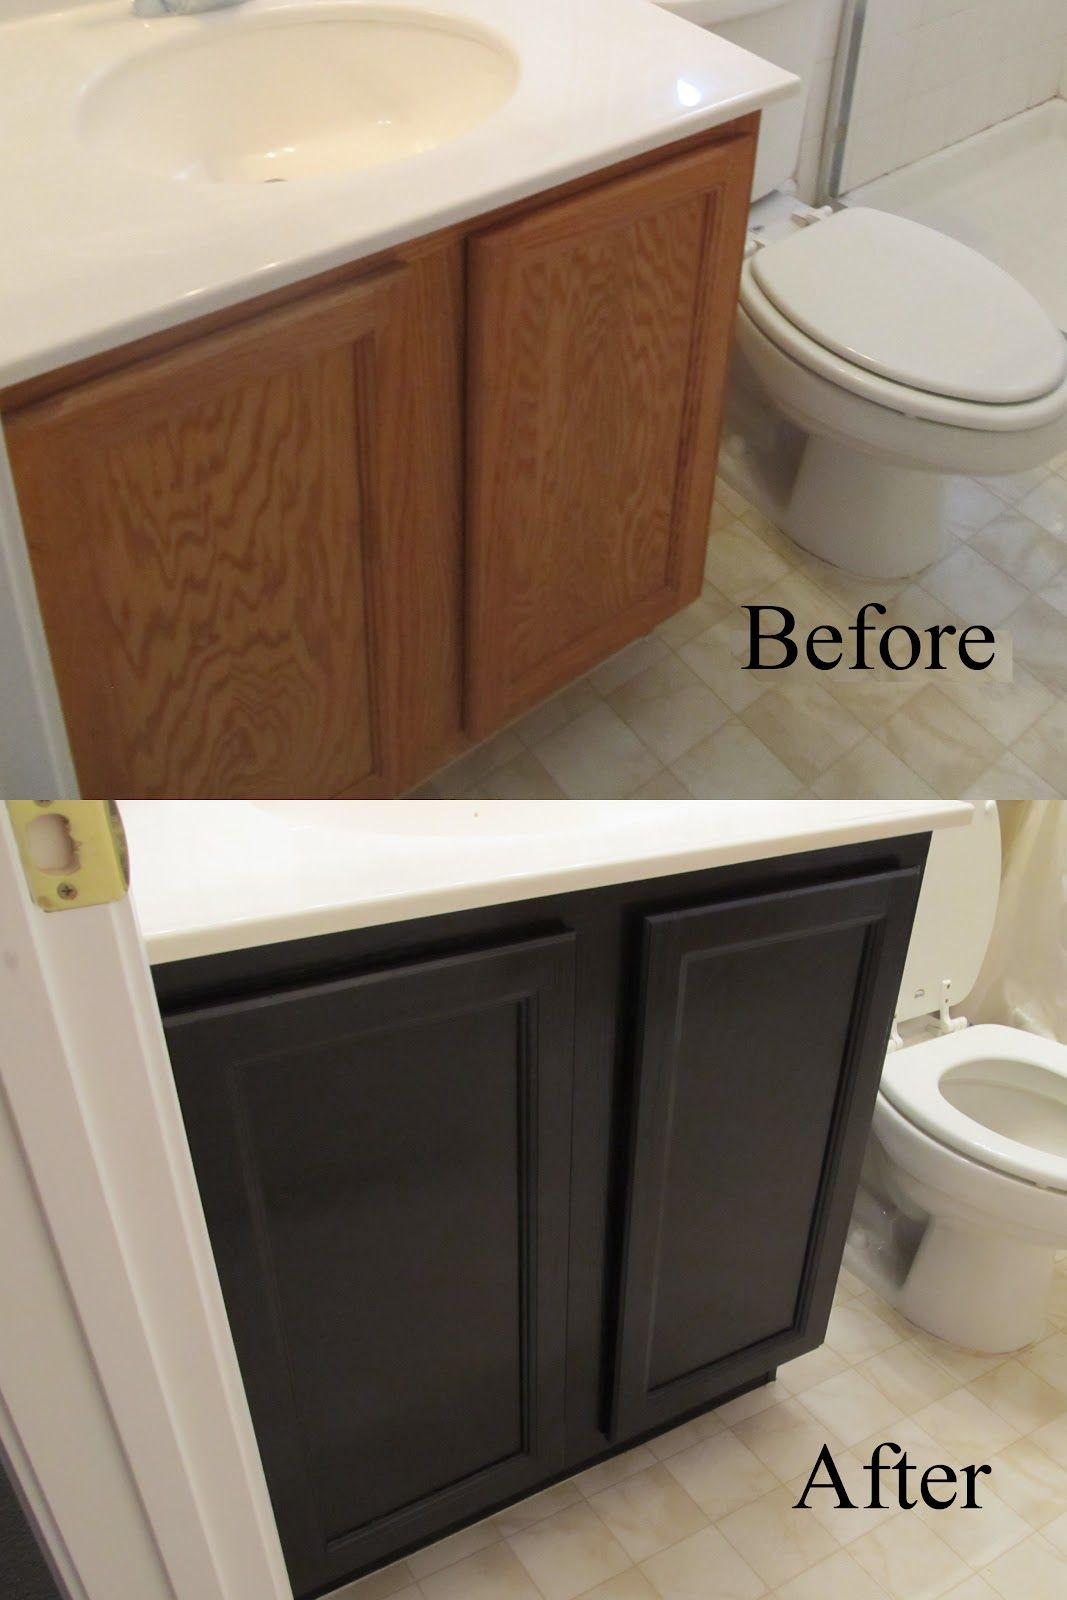 Easy diy cabinet staining professional results bathrooms